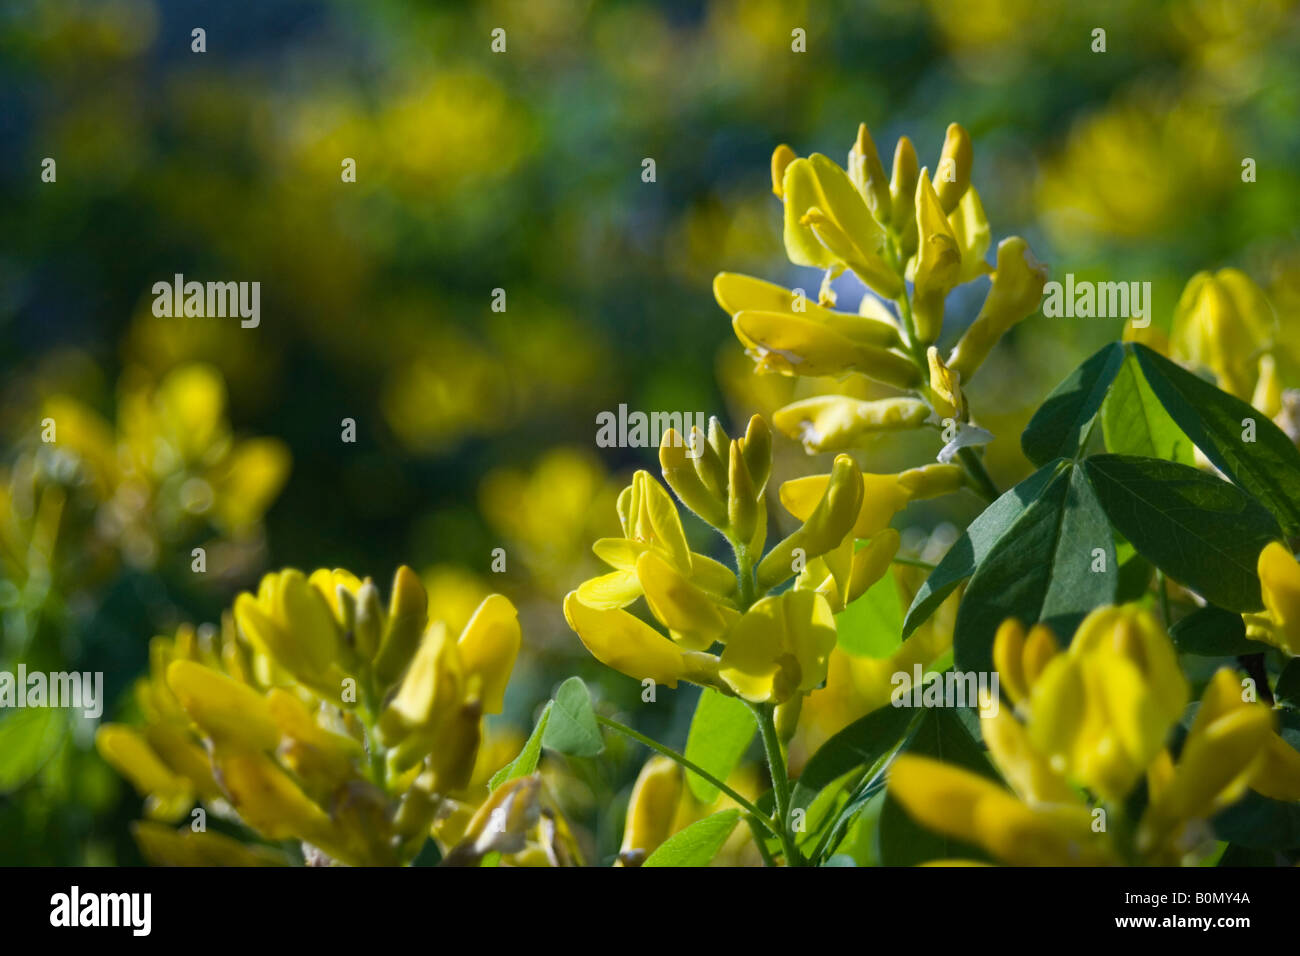 joseph dupouy nature petteria ramentacea cytise Stock Photo